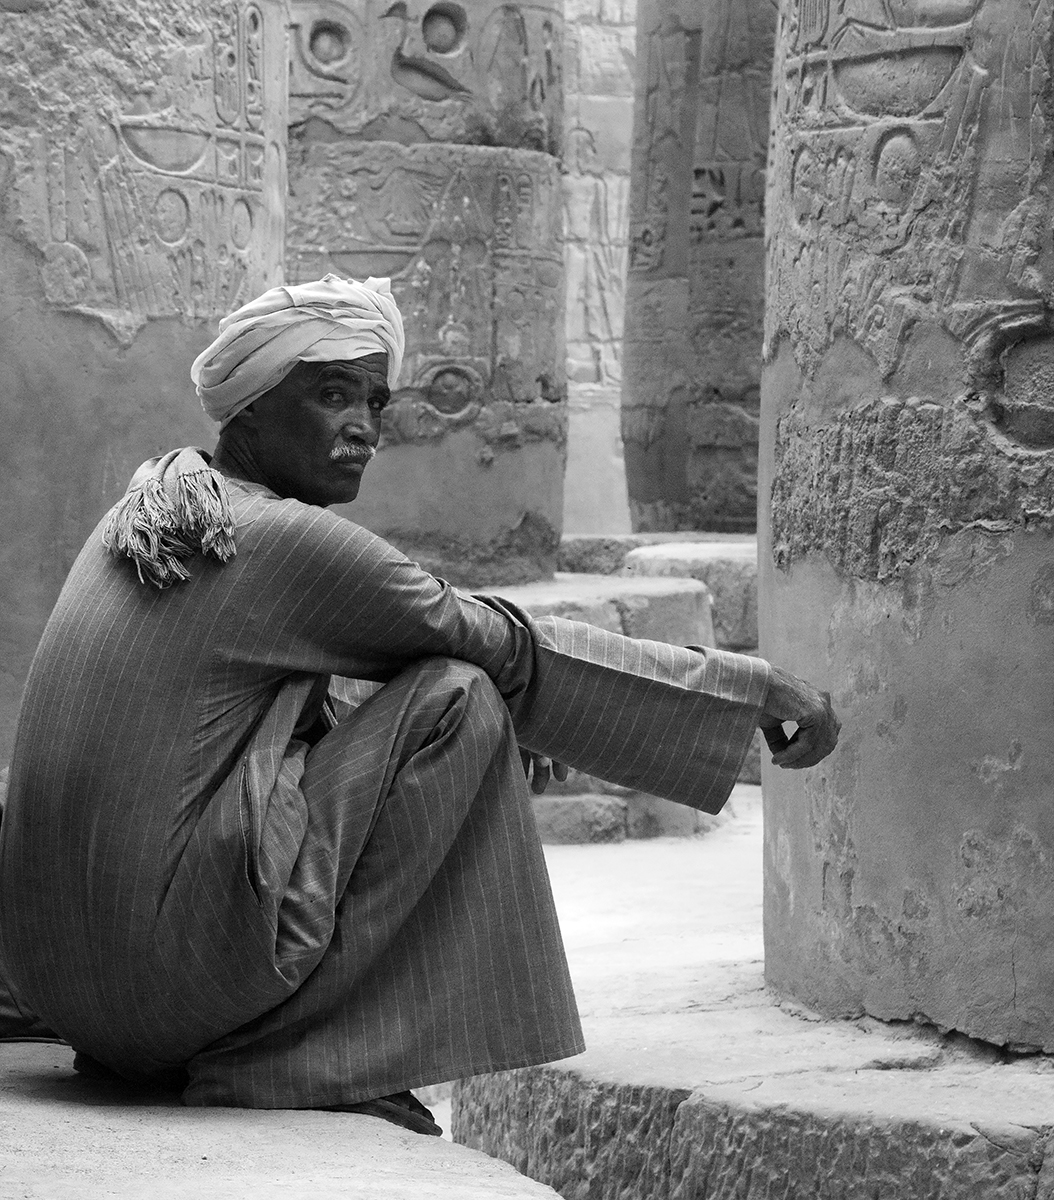 A curator is caught off guard within the forest of massive columns in the Karnak Temple, Luxor, Egypt